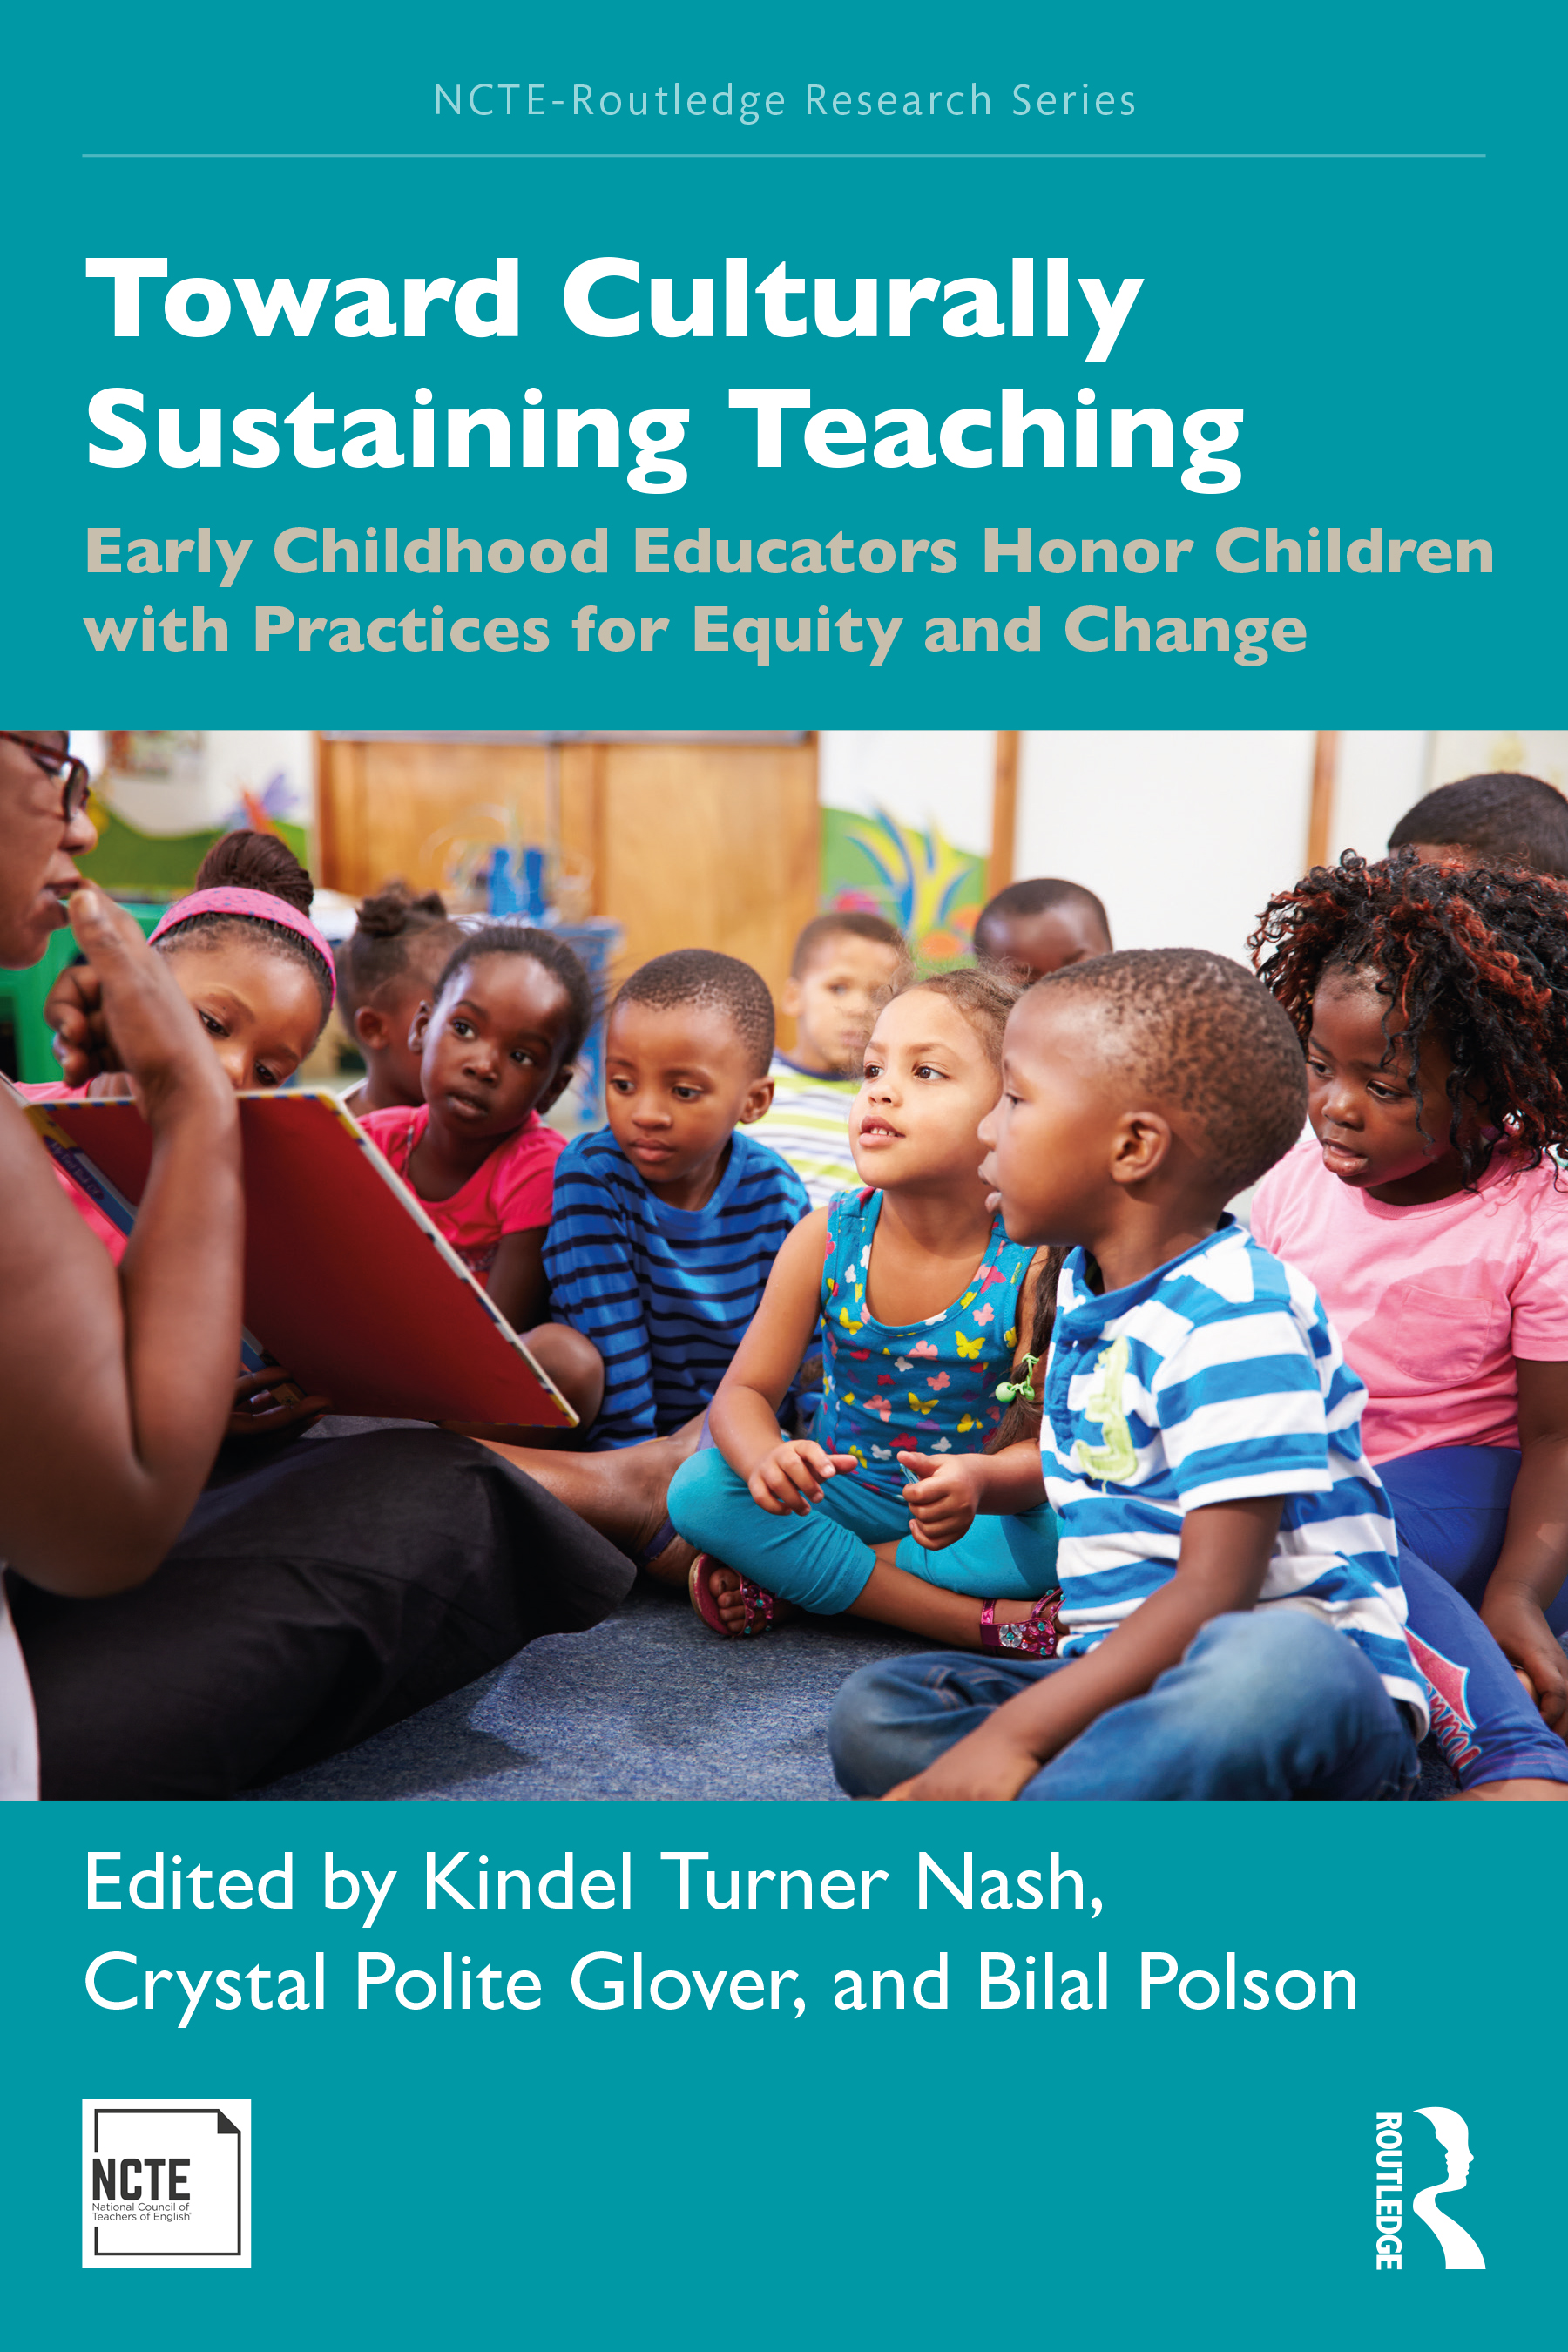 Toward Culturally Sustaining Teaching: Early Childhood Educators Honor Children with Practices for Equity and Change book cover